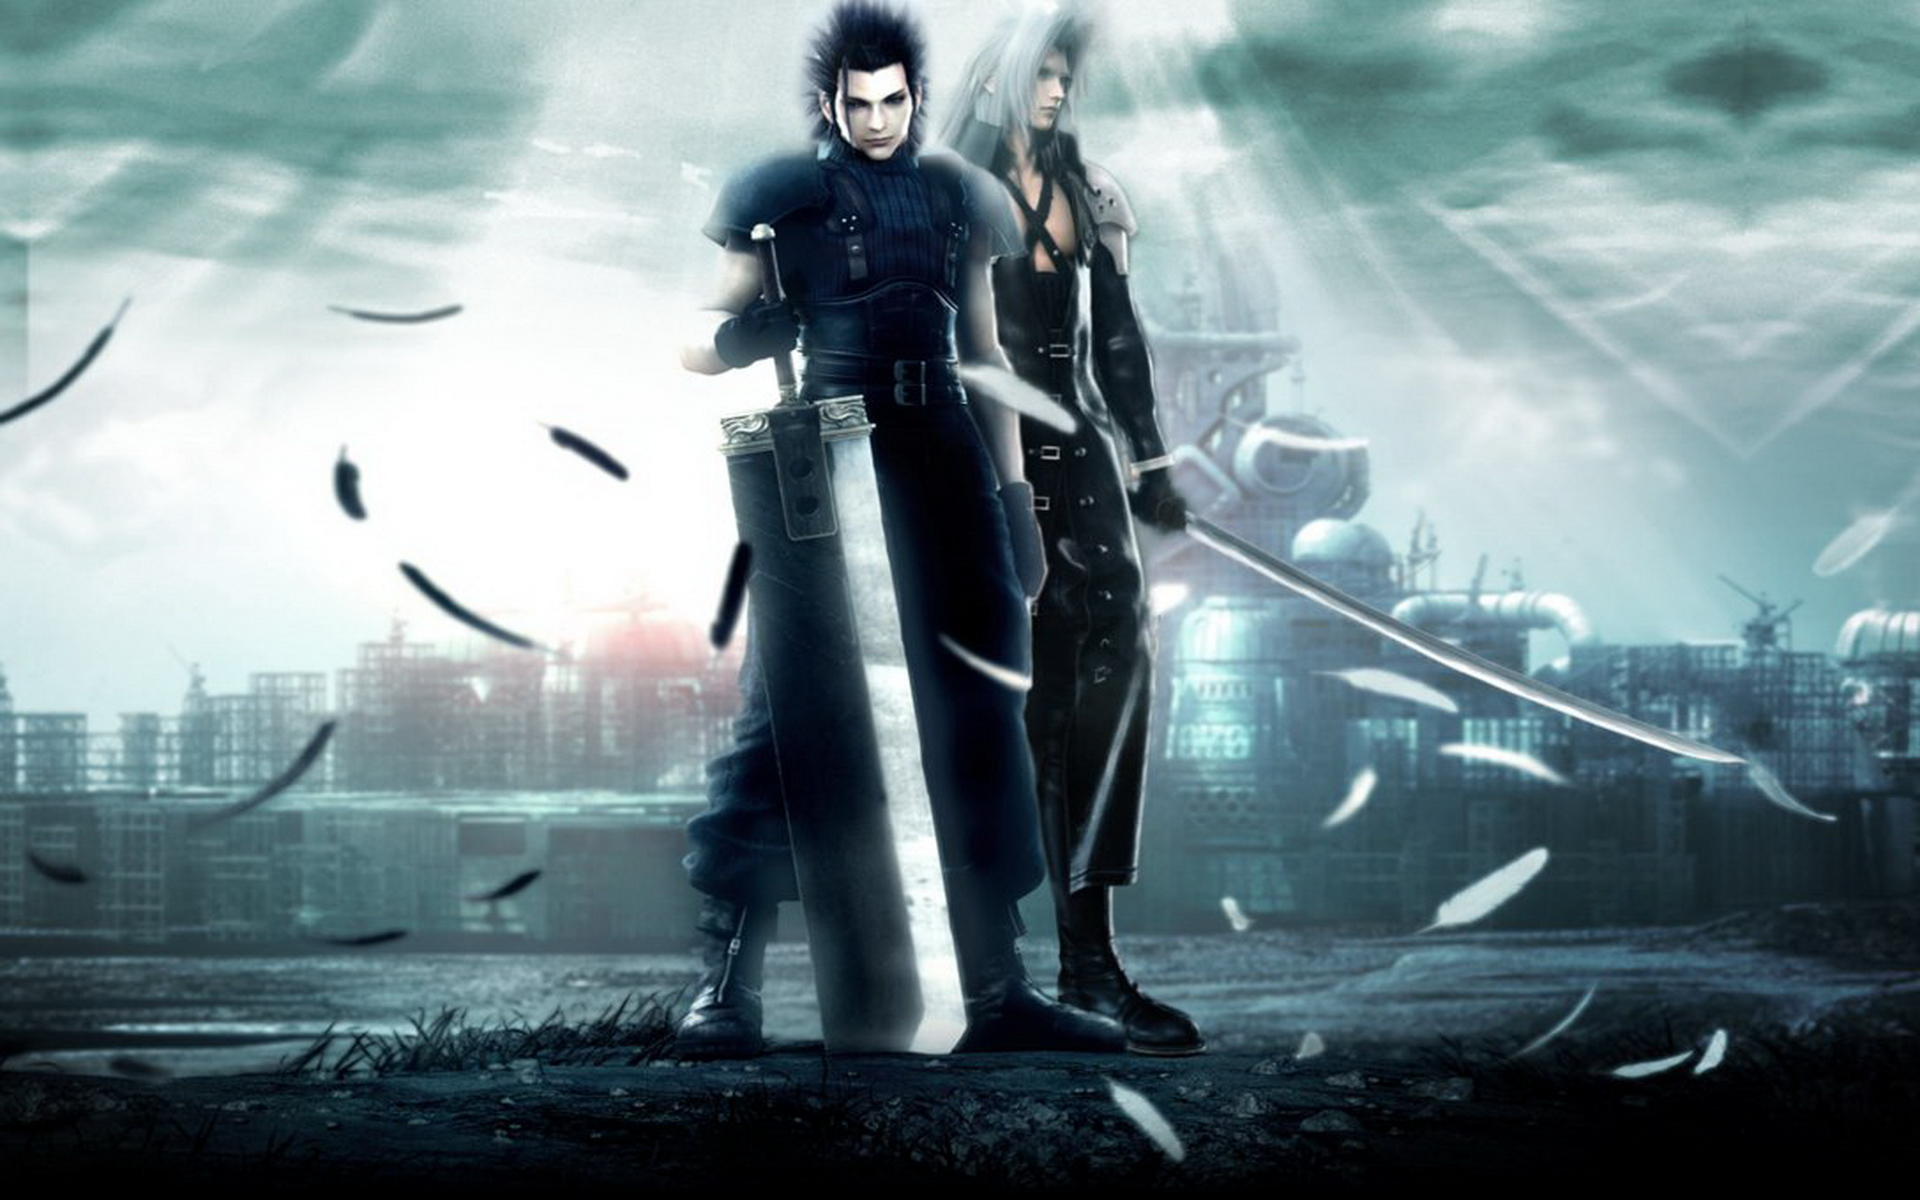 Free Download Crisis Core Final Fantasy Vii Wallpapers 4 Hd